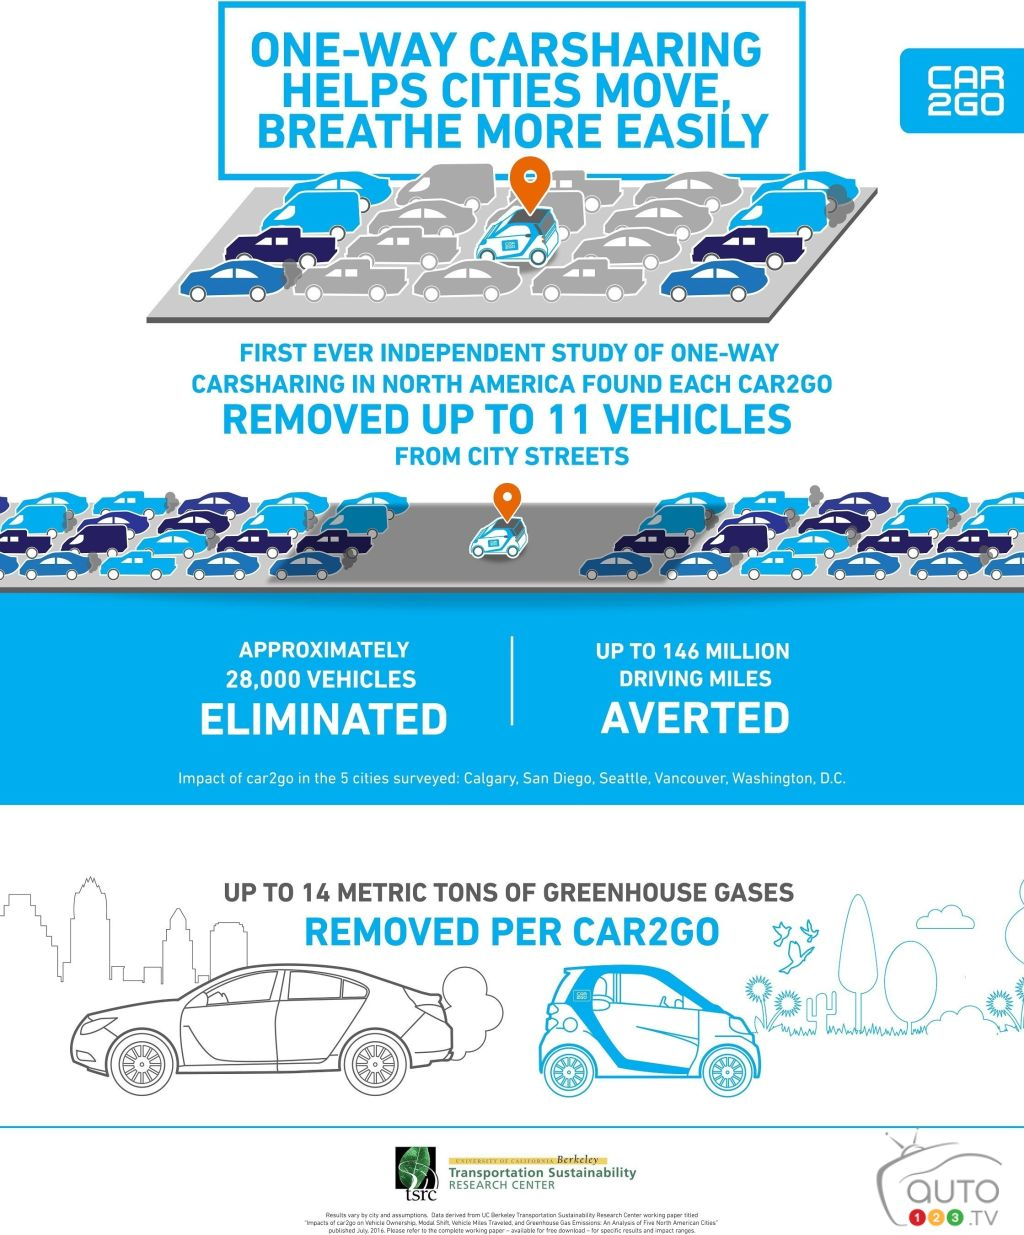 Carsharing services like car2go effectively reduce traffic congestion